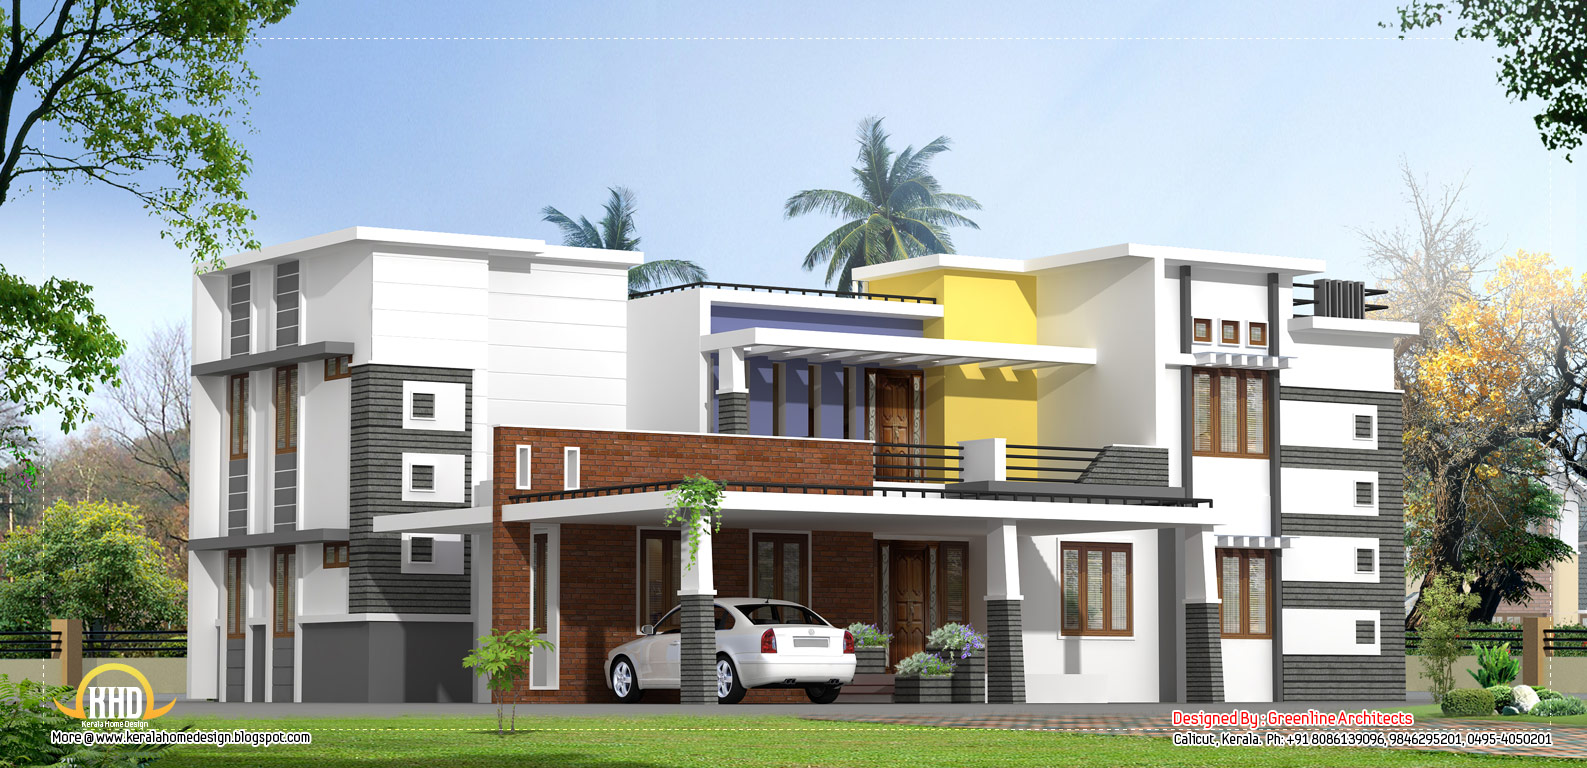 Modern Contemporary Luxury Home Design   3300 Sq. Ft. (307 Sq. M